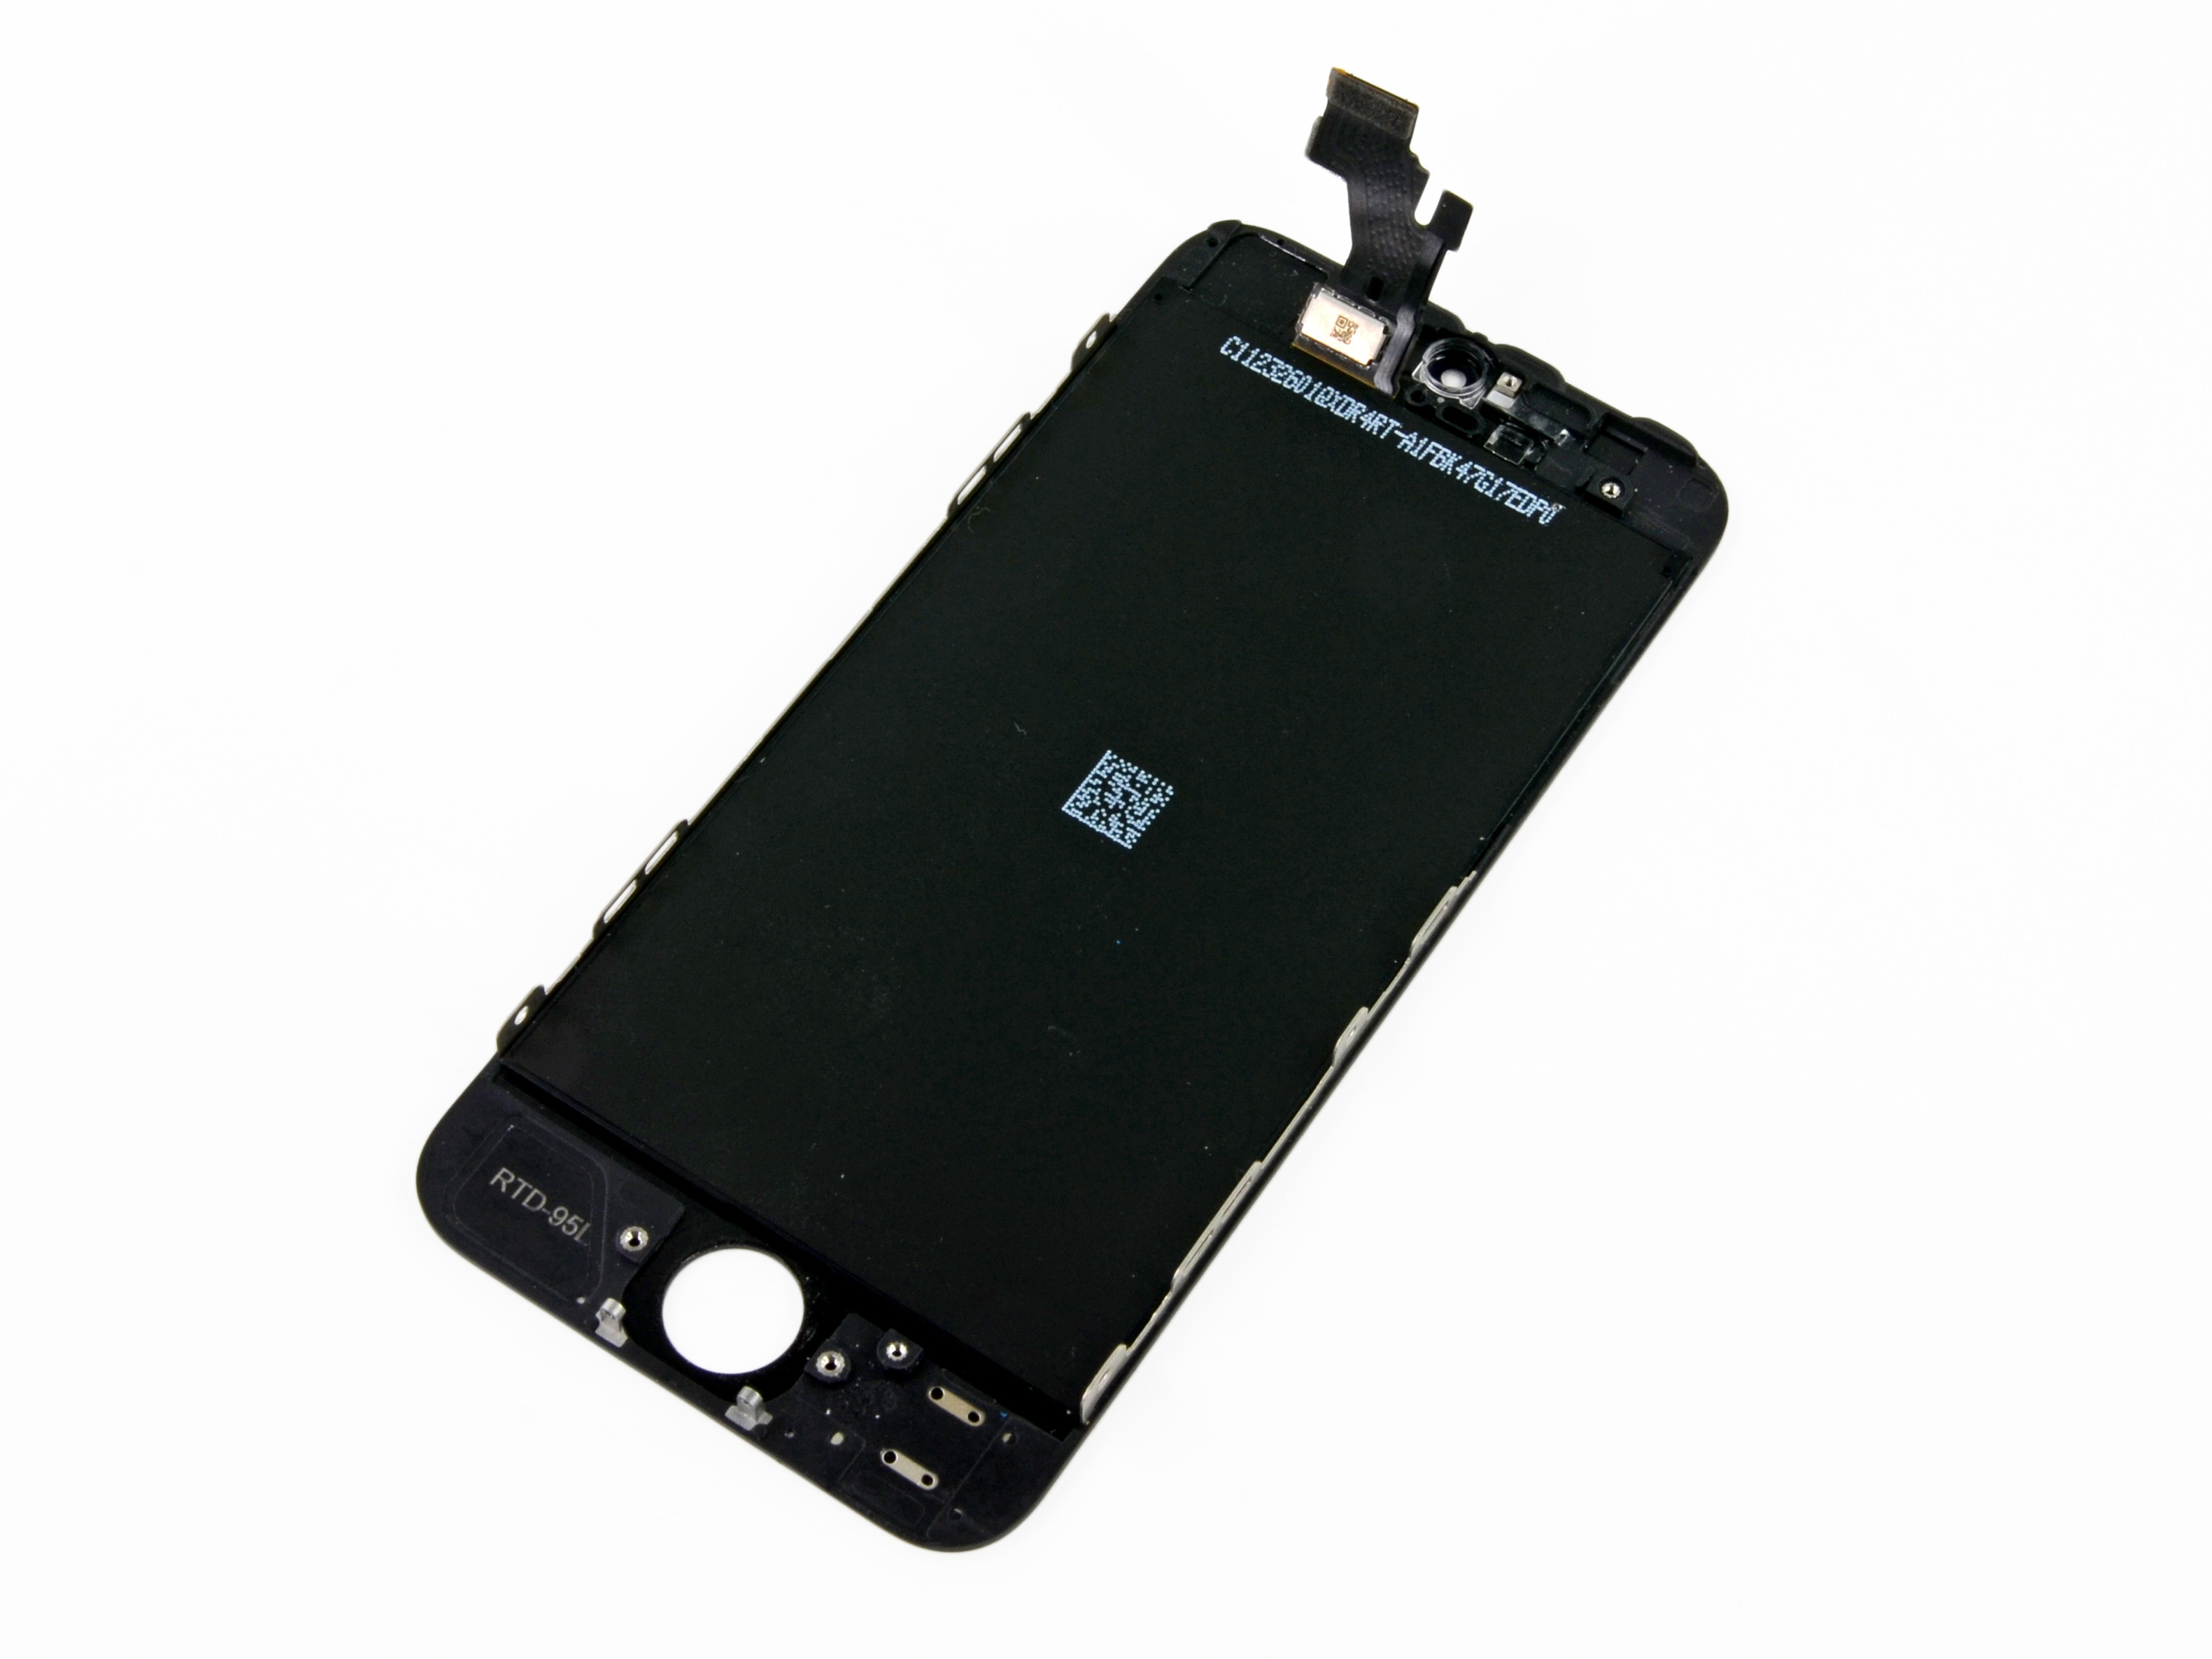 Iphone 5s Screen Replacement Price